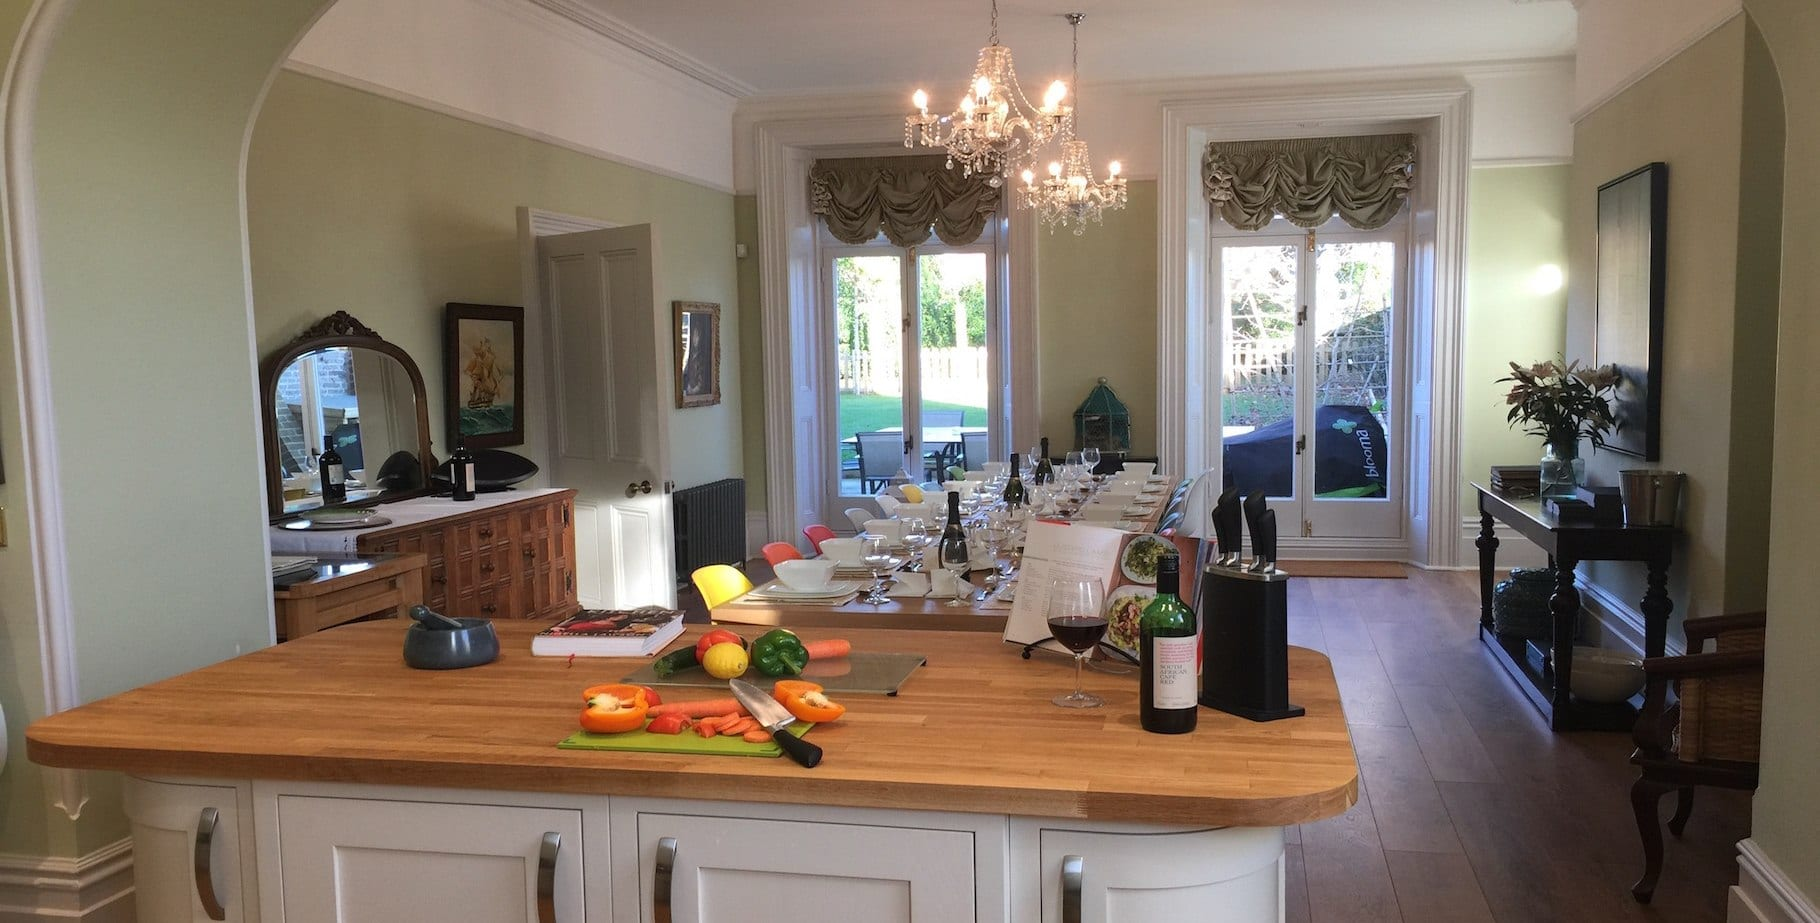 The large dining kitchen at Quay House with the table laid for guests